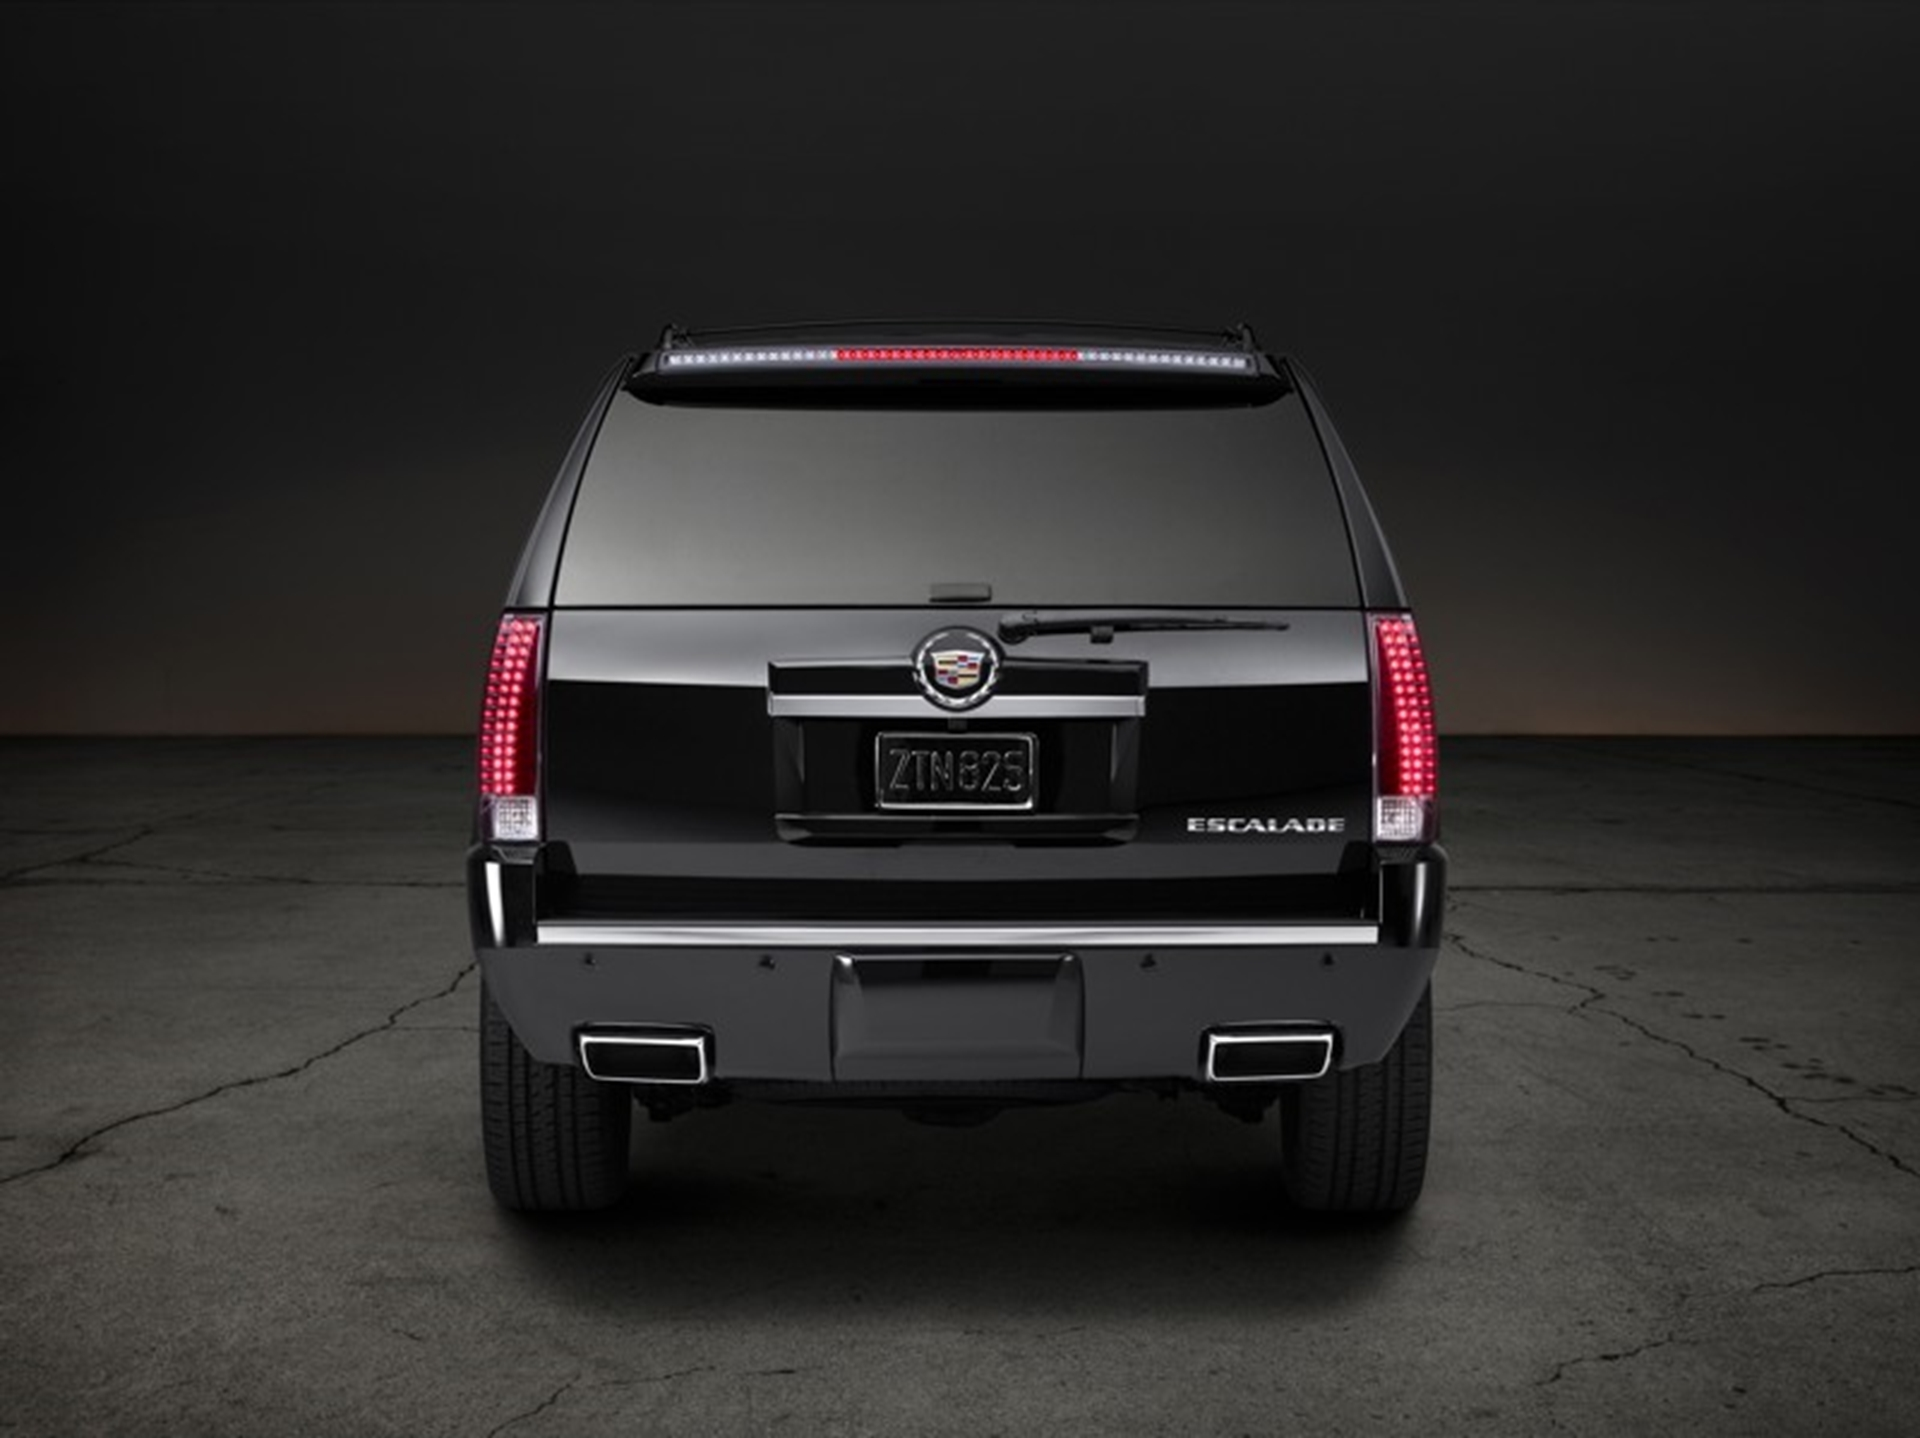 Cadillac Escalade 2012 Rear